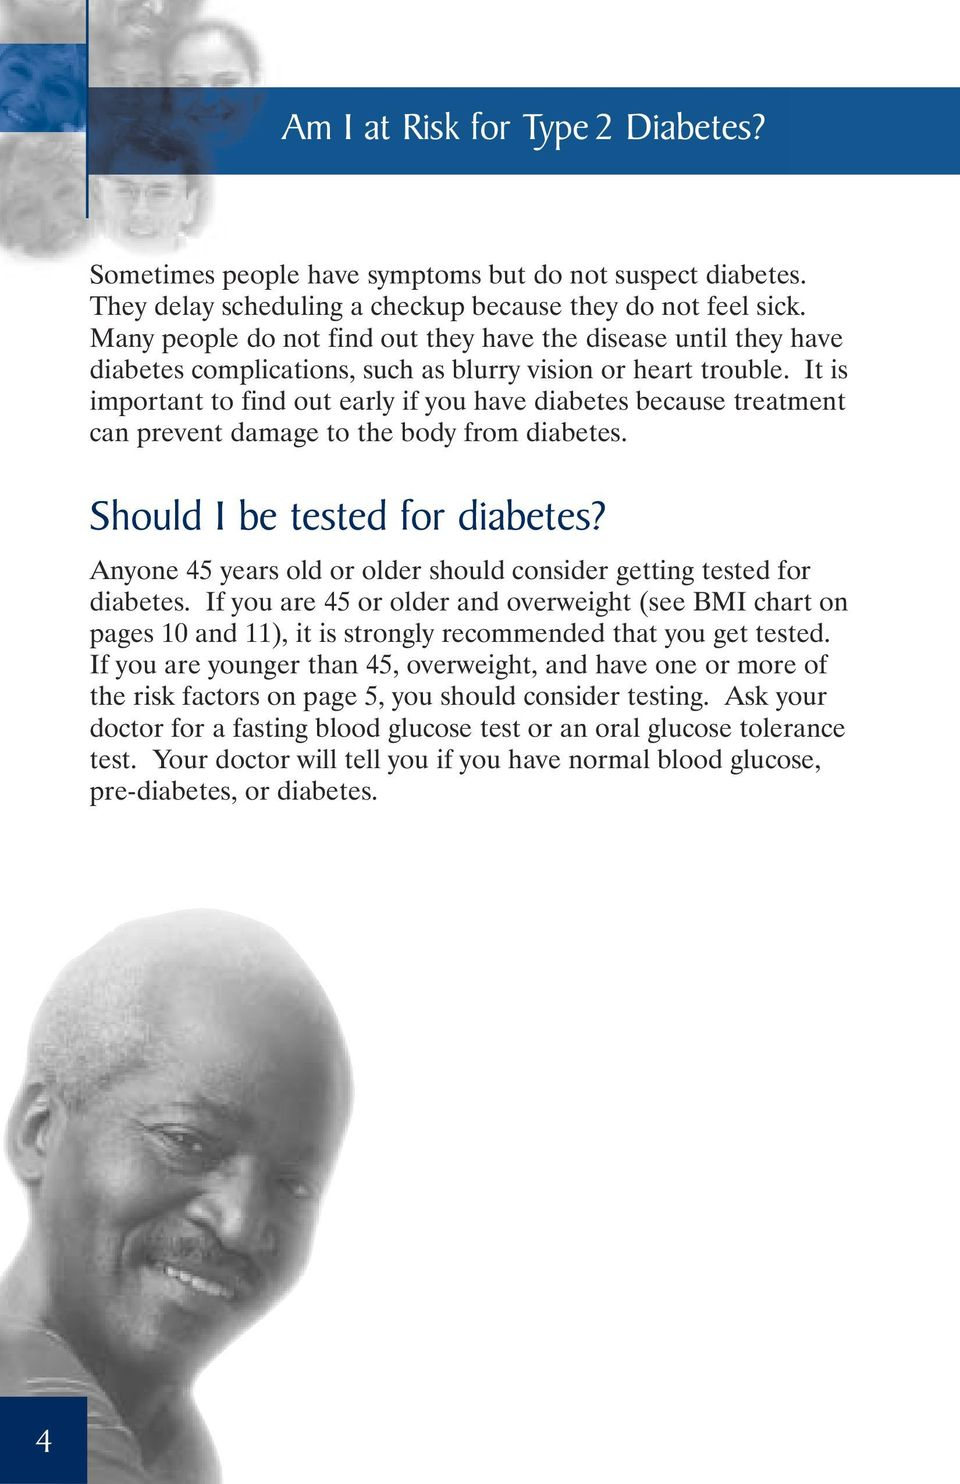 It is important to find out early if you have diabetes because treatment can prevent damage to the body from diabetes. Should I be tested for diabetes?